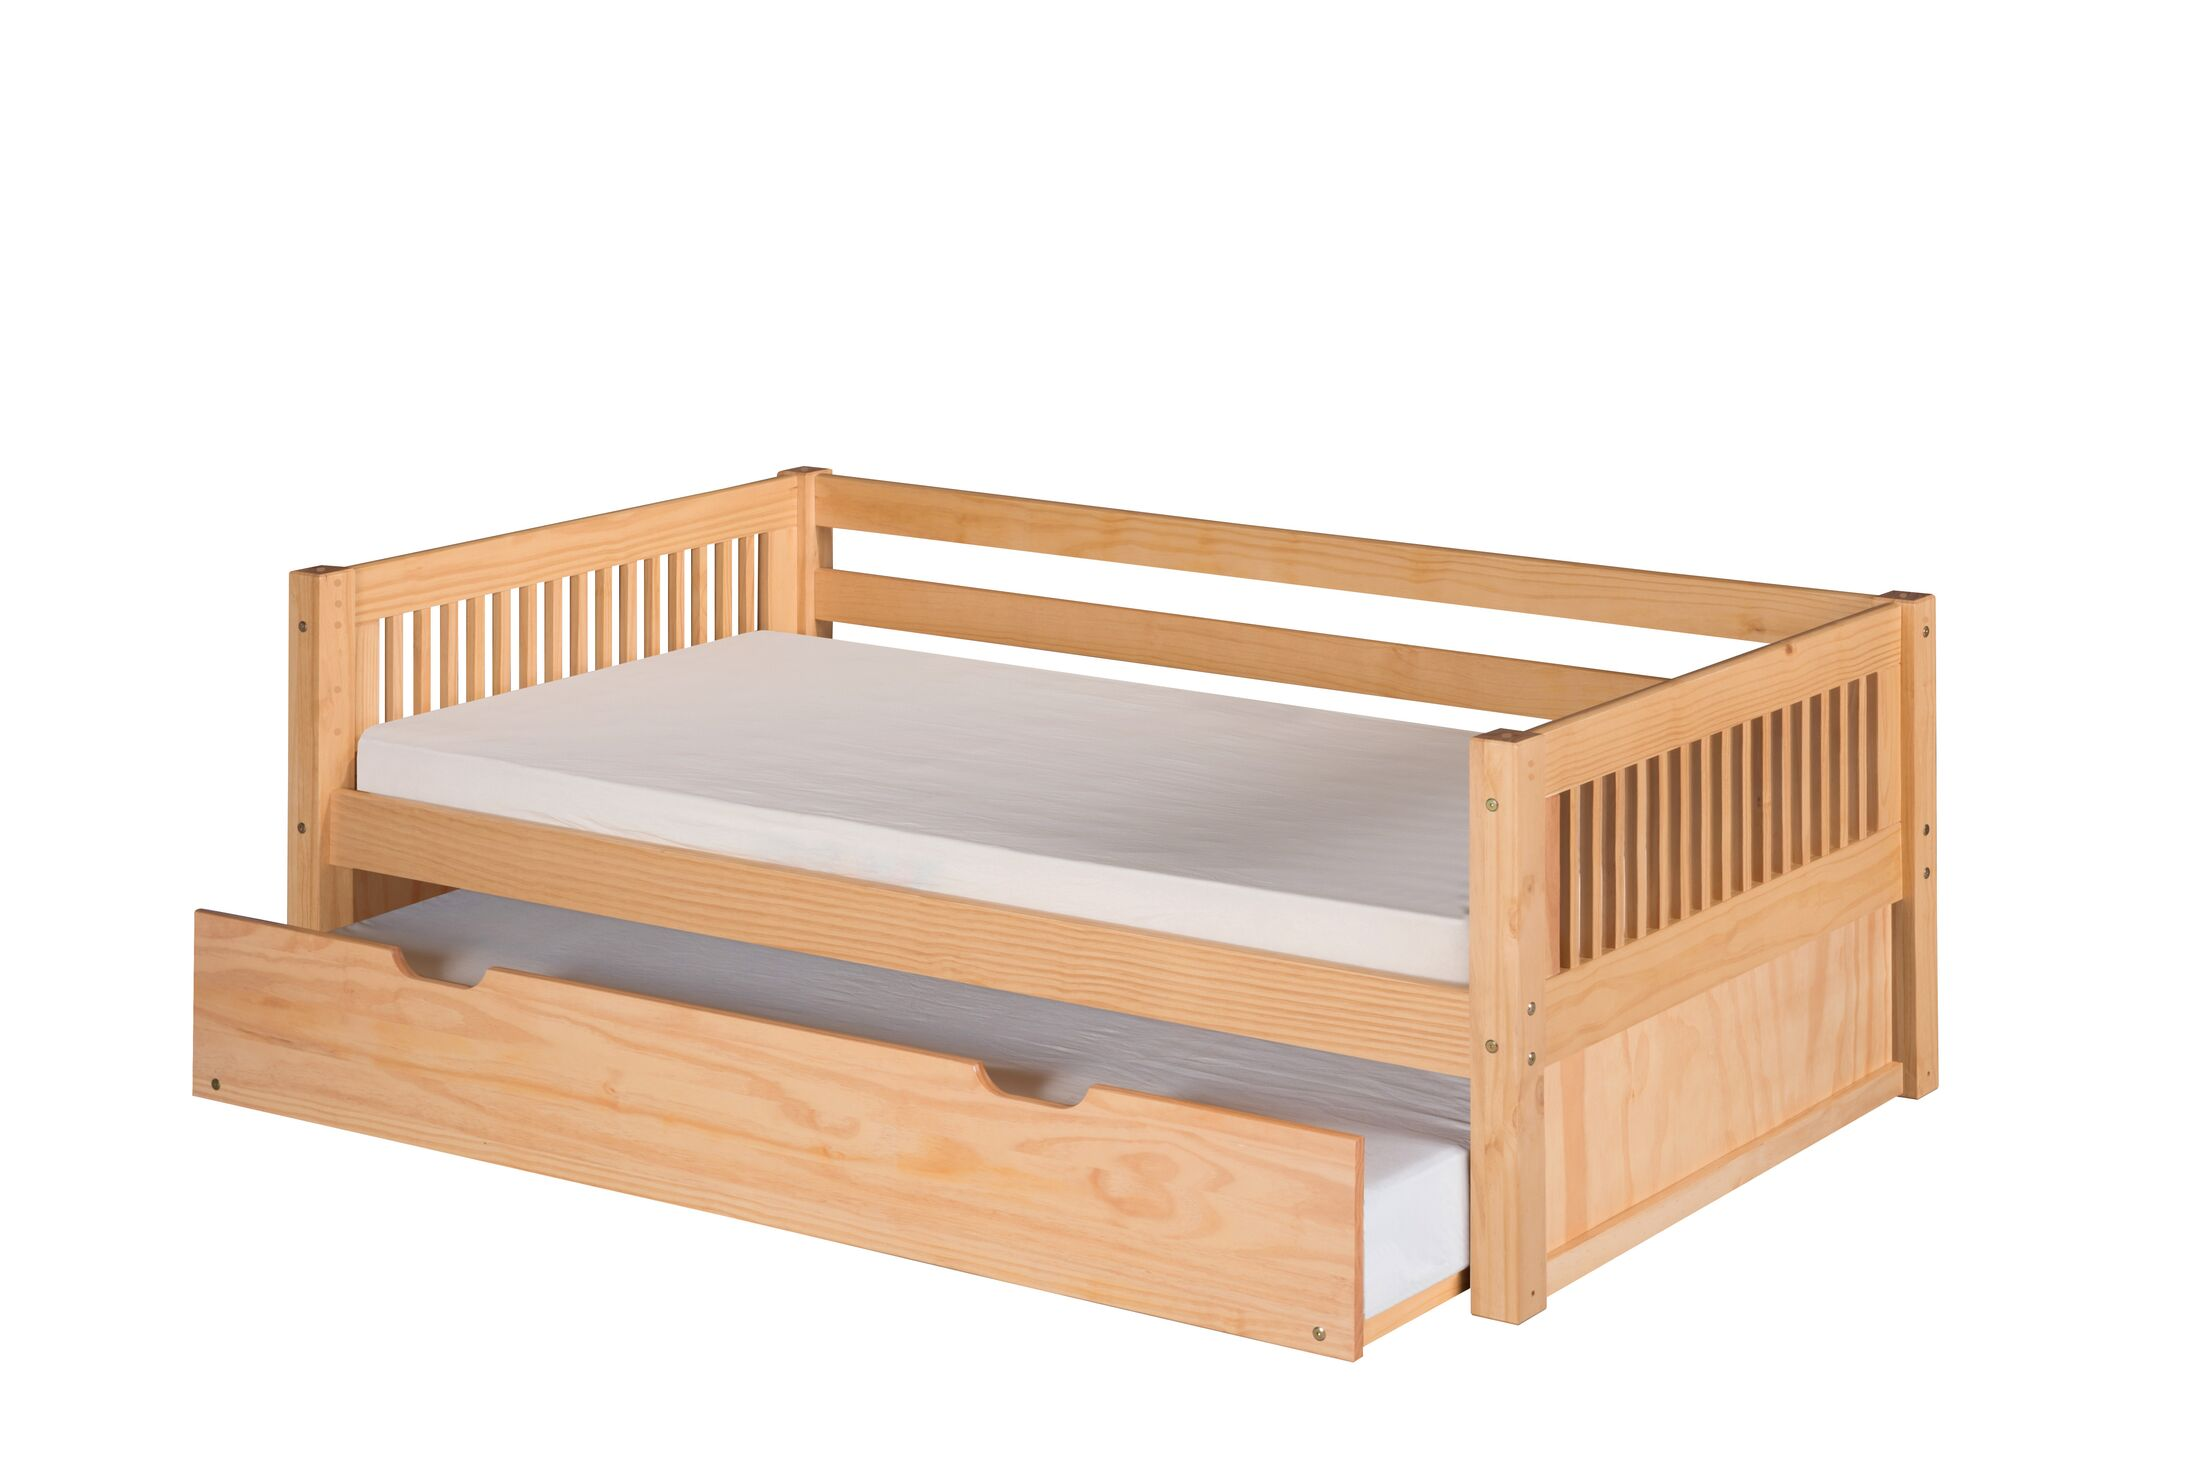 Newfield Daybed with Trundle Color: Natural, Accessories: Trundle Included